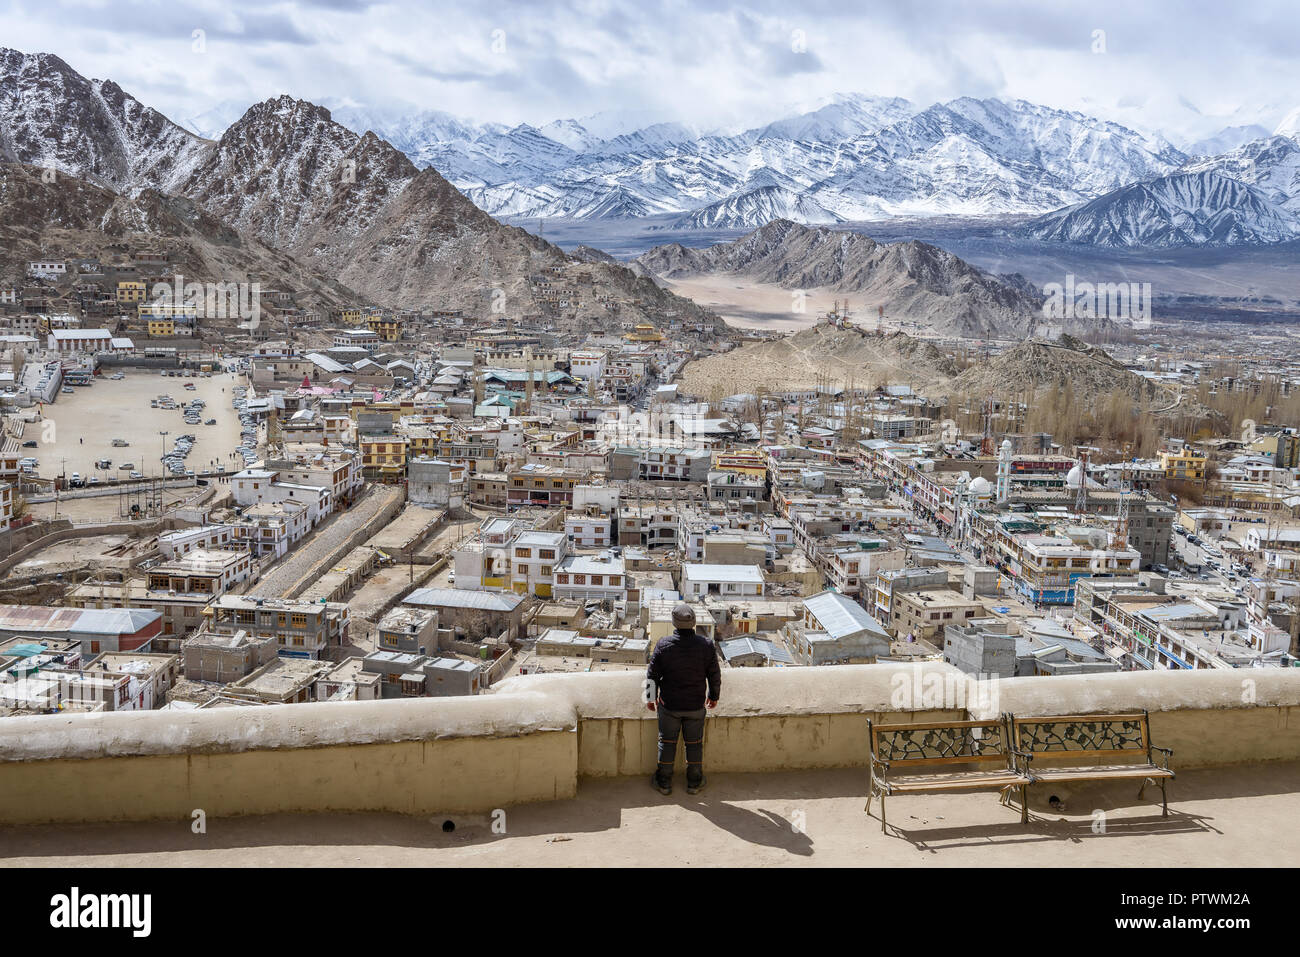 Man enjoying the views of Leh Ladakh in India, cityscape of the city Leh in Jammu and Kashmir, beautiful snow-capped mountains in Himalaya. High altit - Stock Image